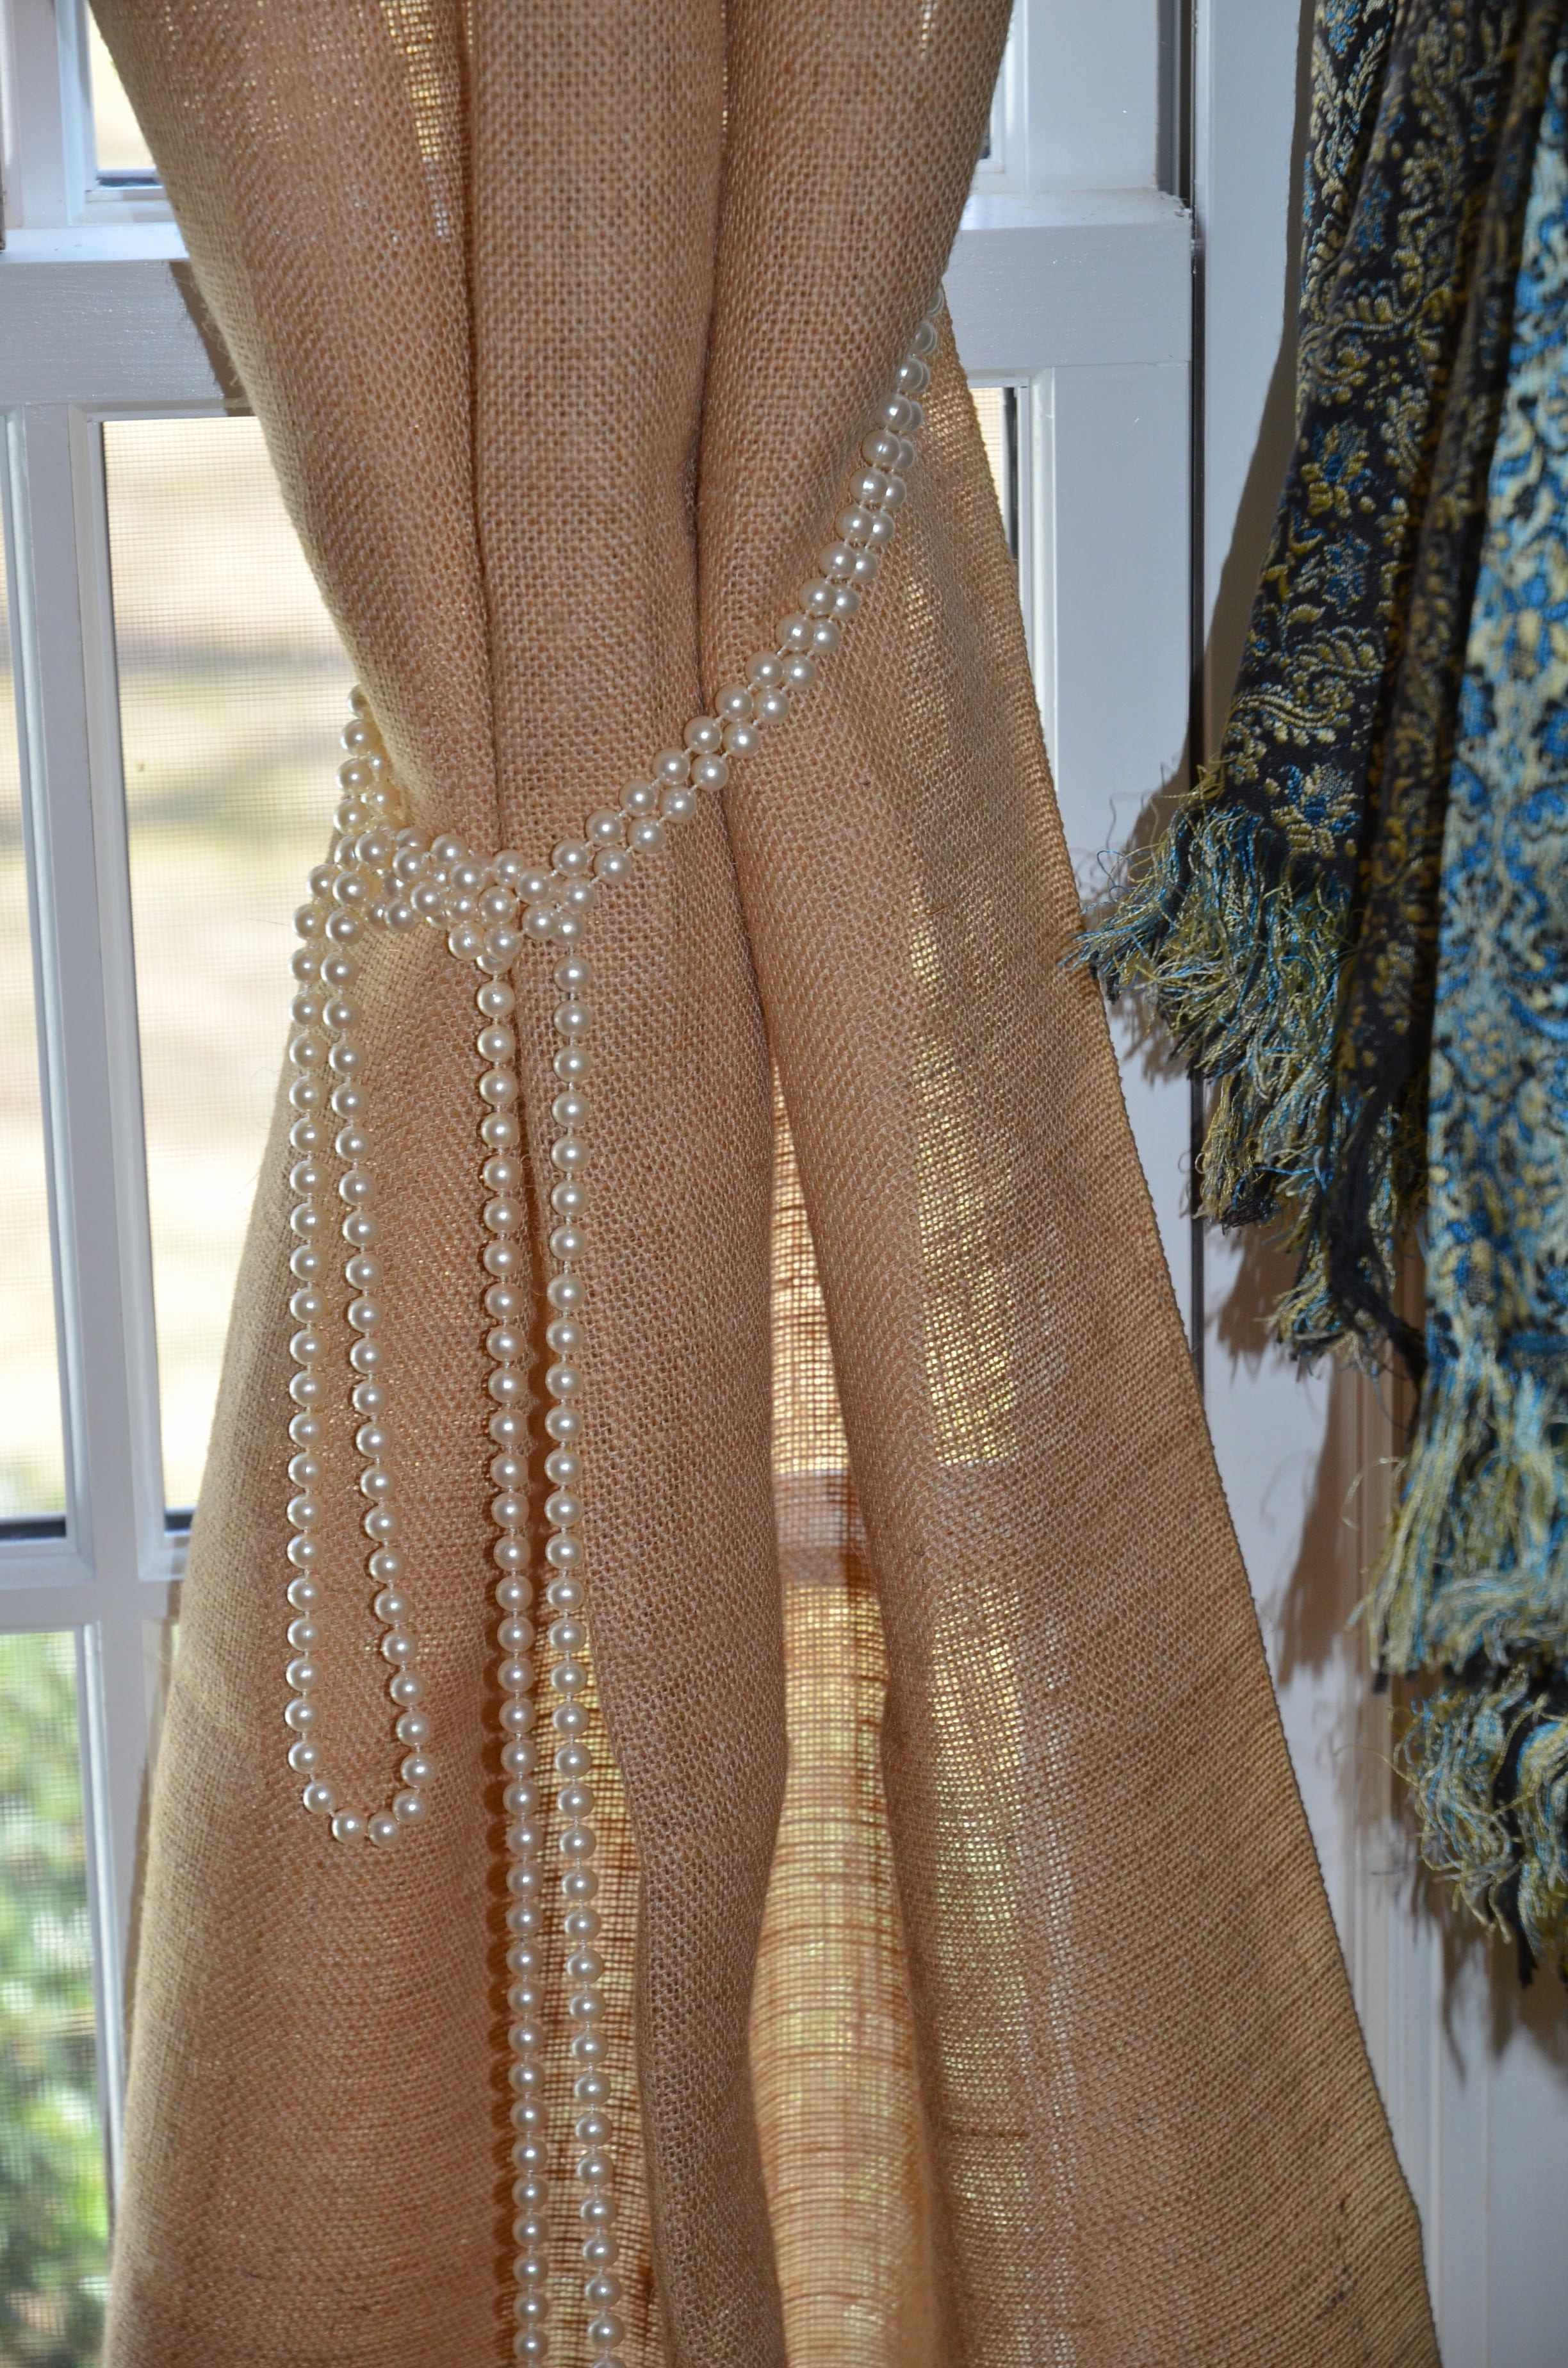 Curtains Drapes Windows Pinterest Cortinas Arpillera Y - Cortinas-de-arpillera